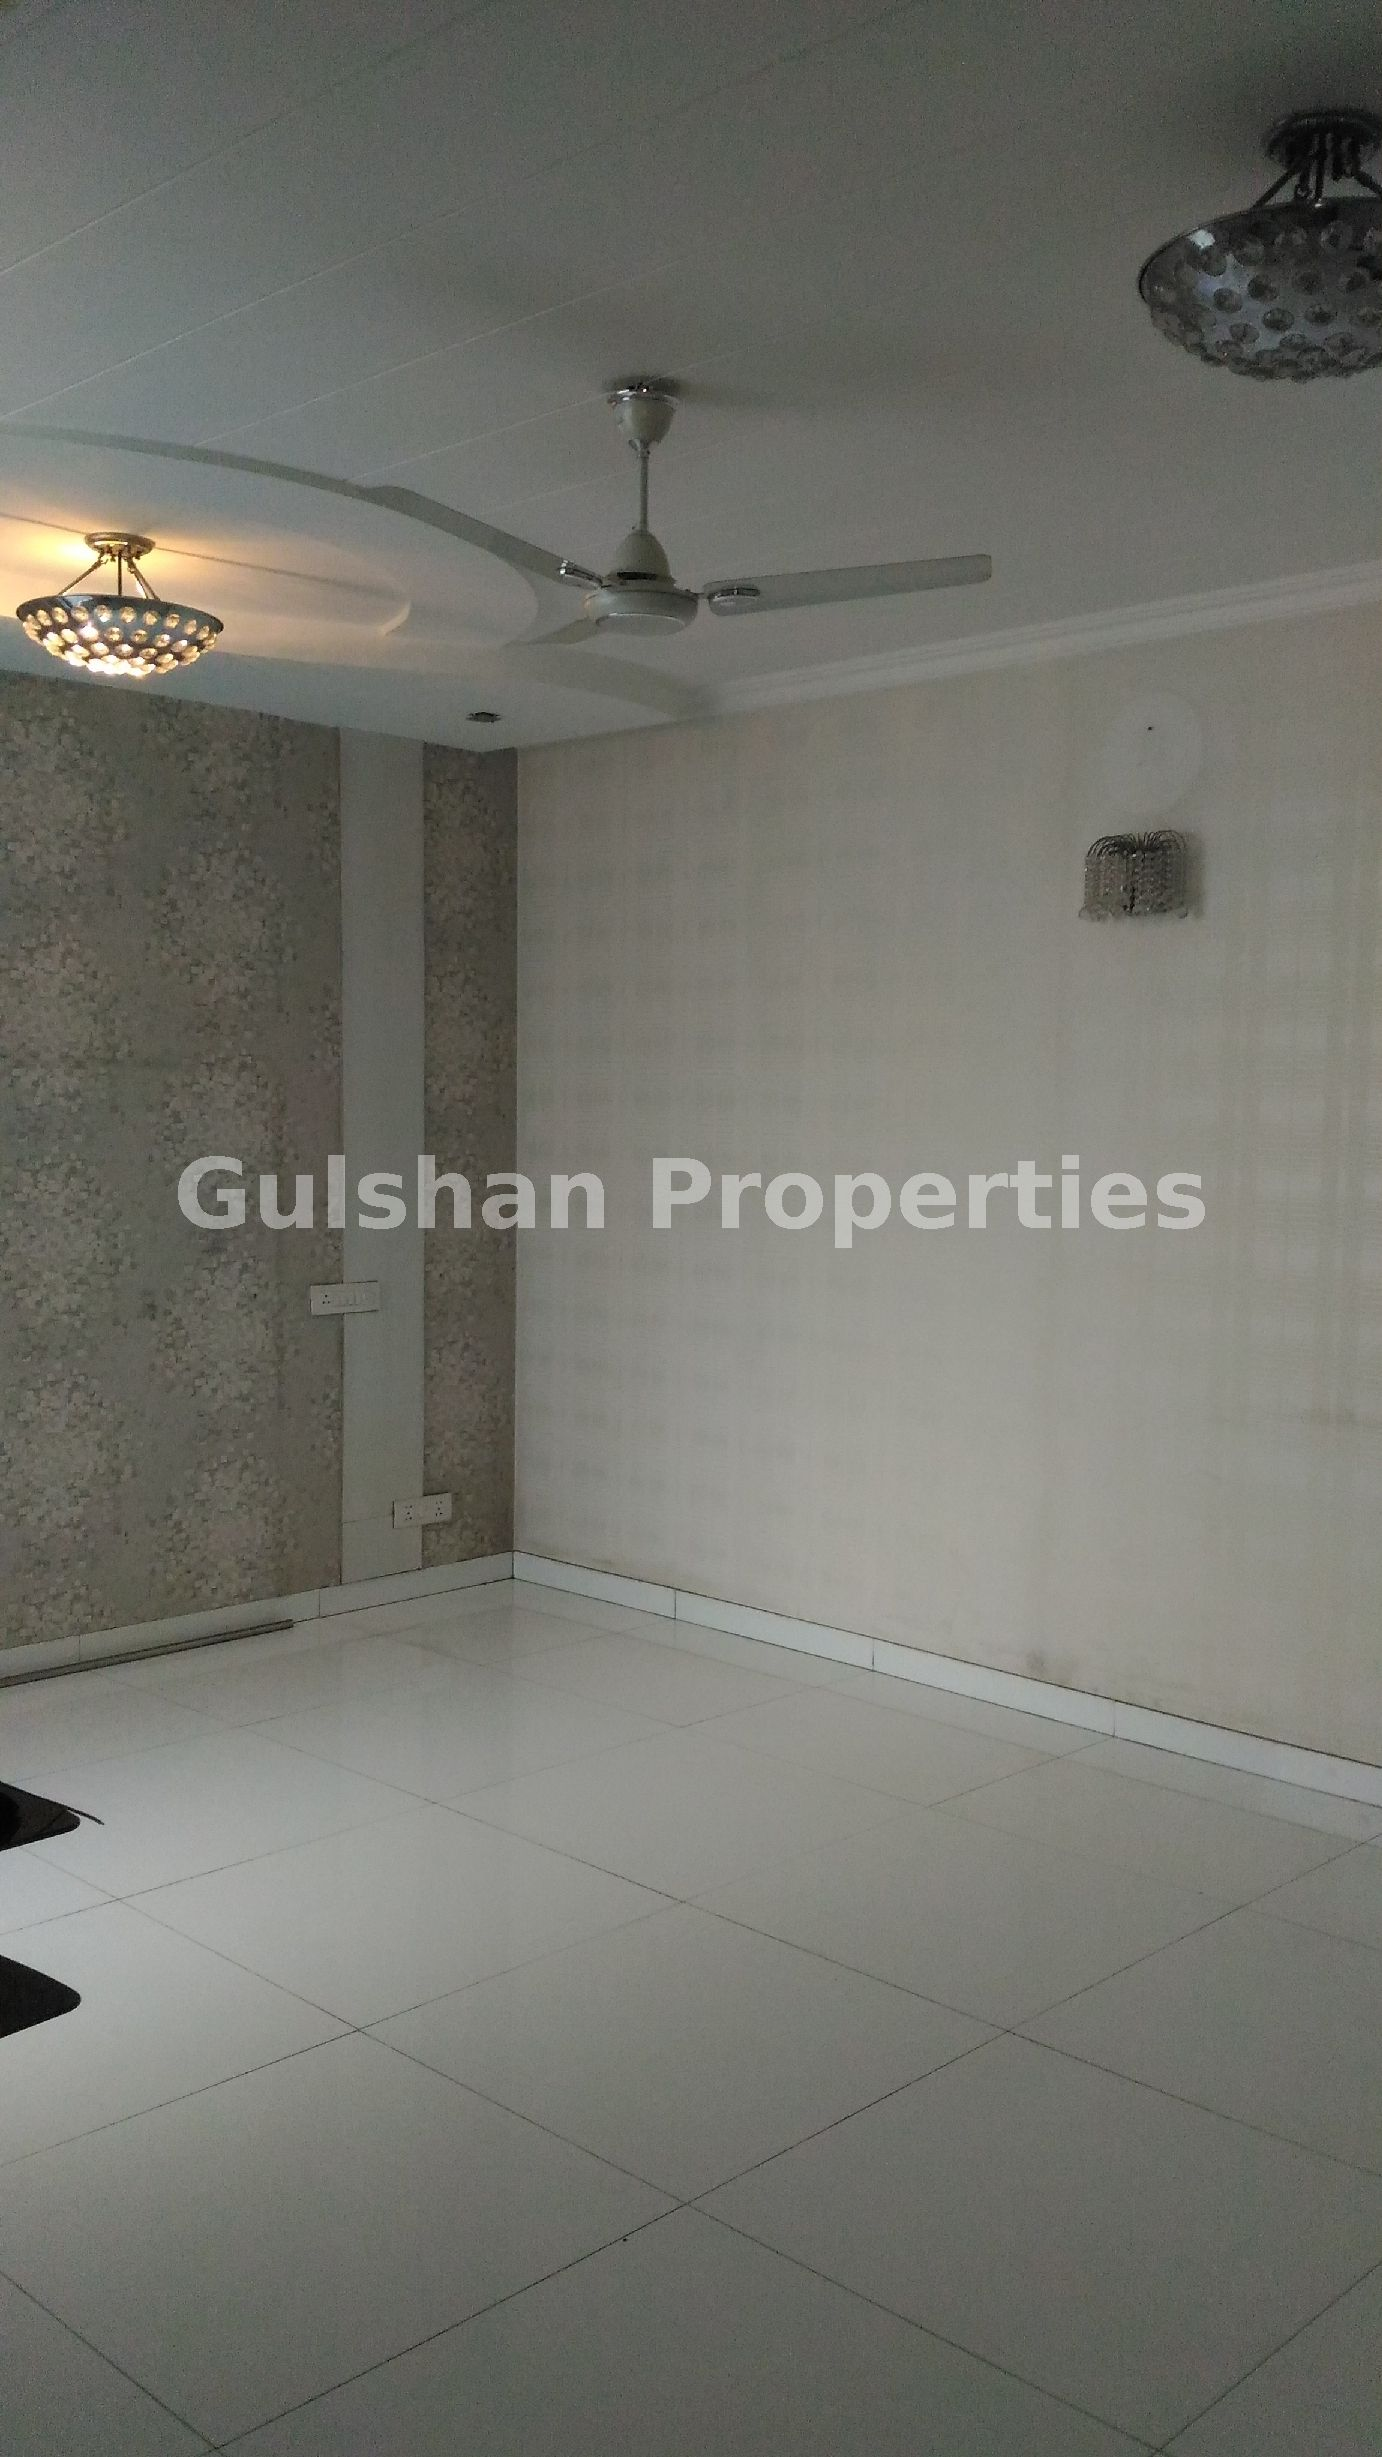 Study Room 40000: Flat For Rent 👉Location : New Friends Colony, New Delhi